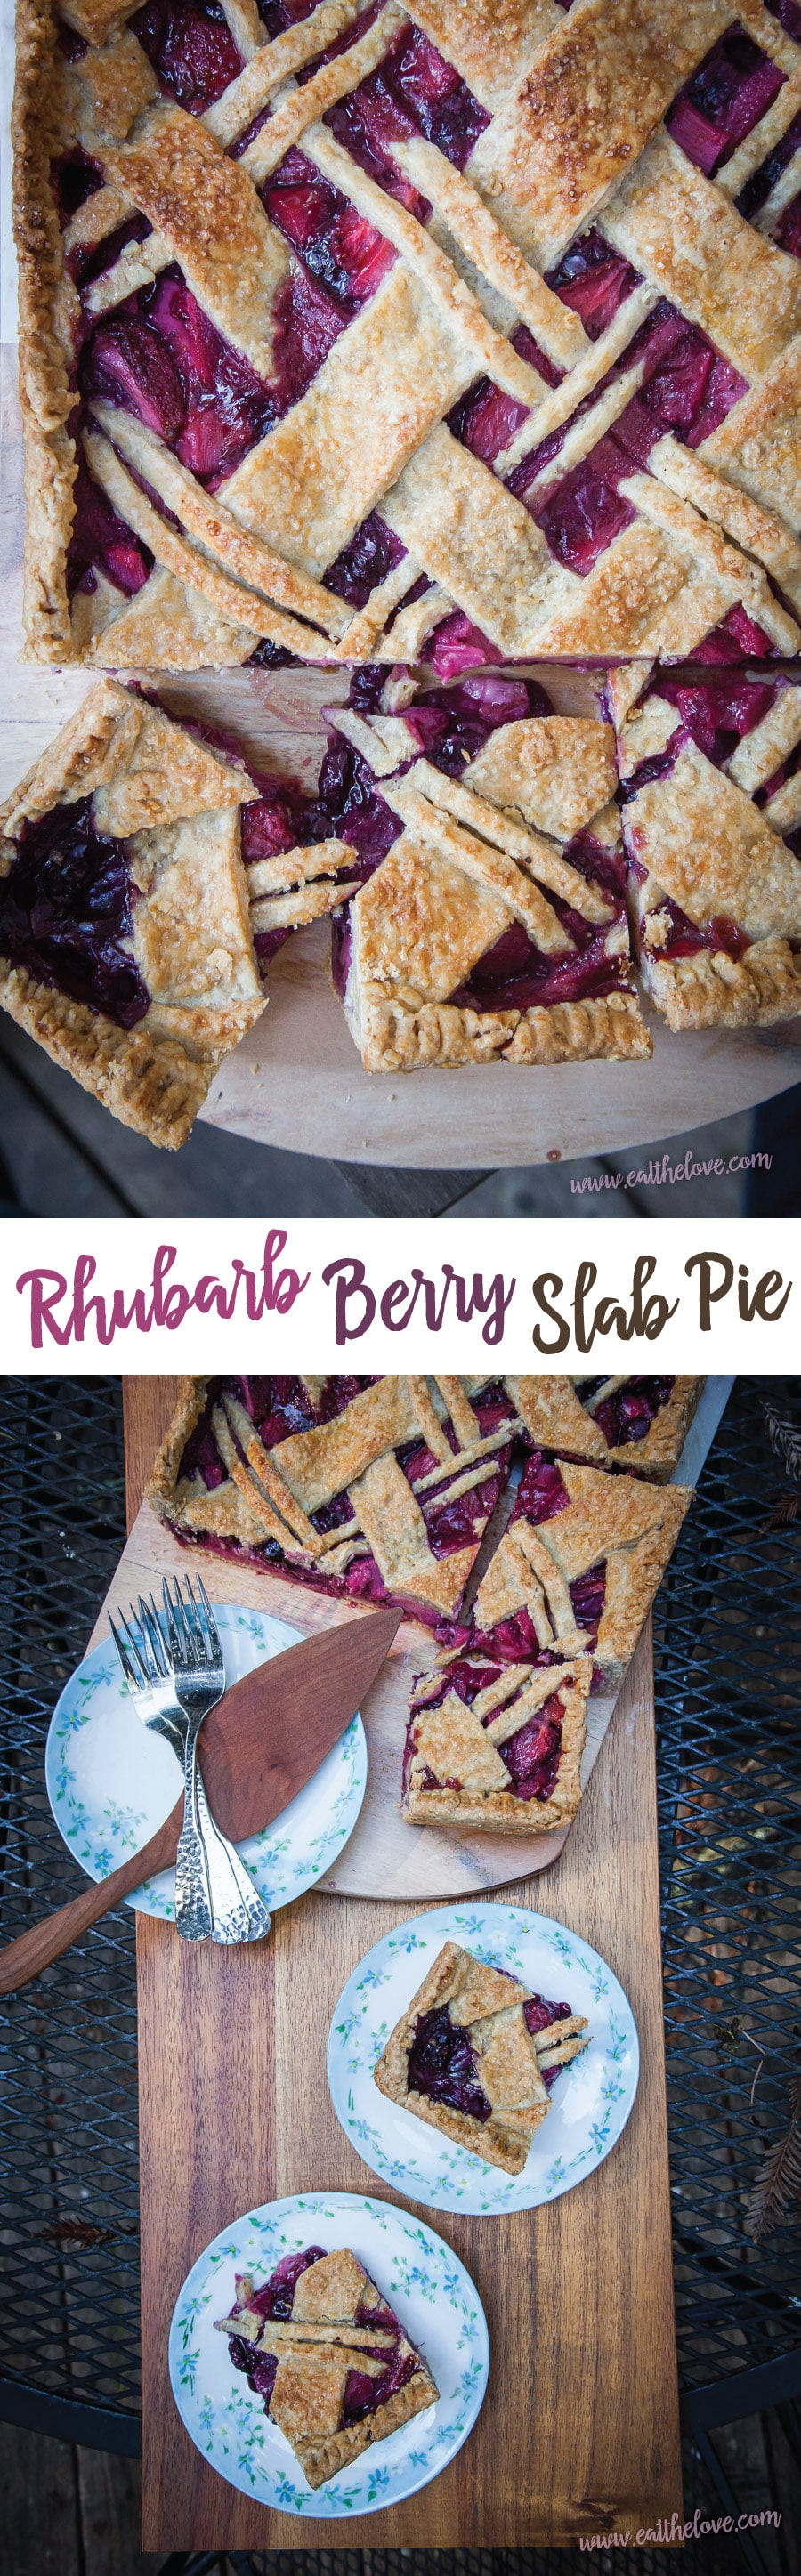 This Rhubarb Berry Slab Pie is great for potlucks and for crowds! #rhubarb #slabpie #recipe #pie #berries #strawberries